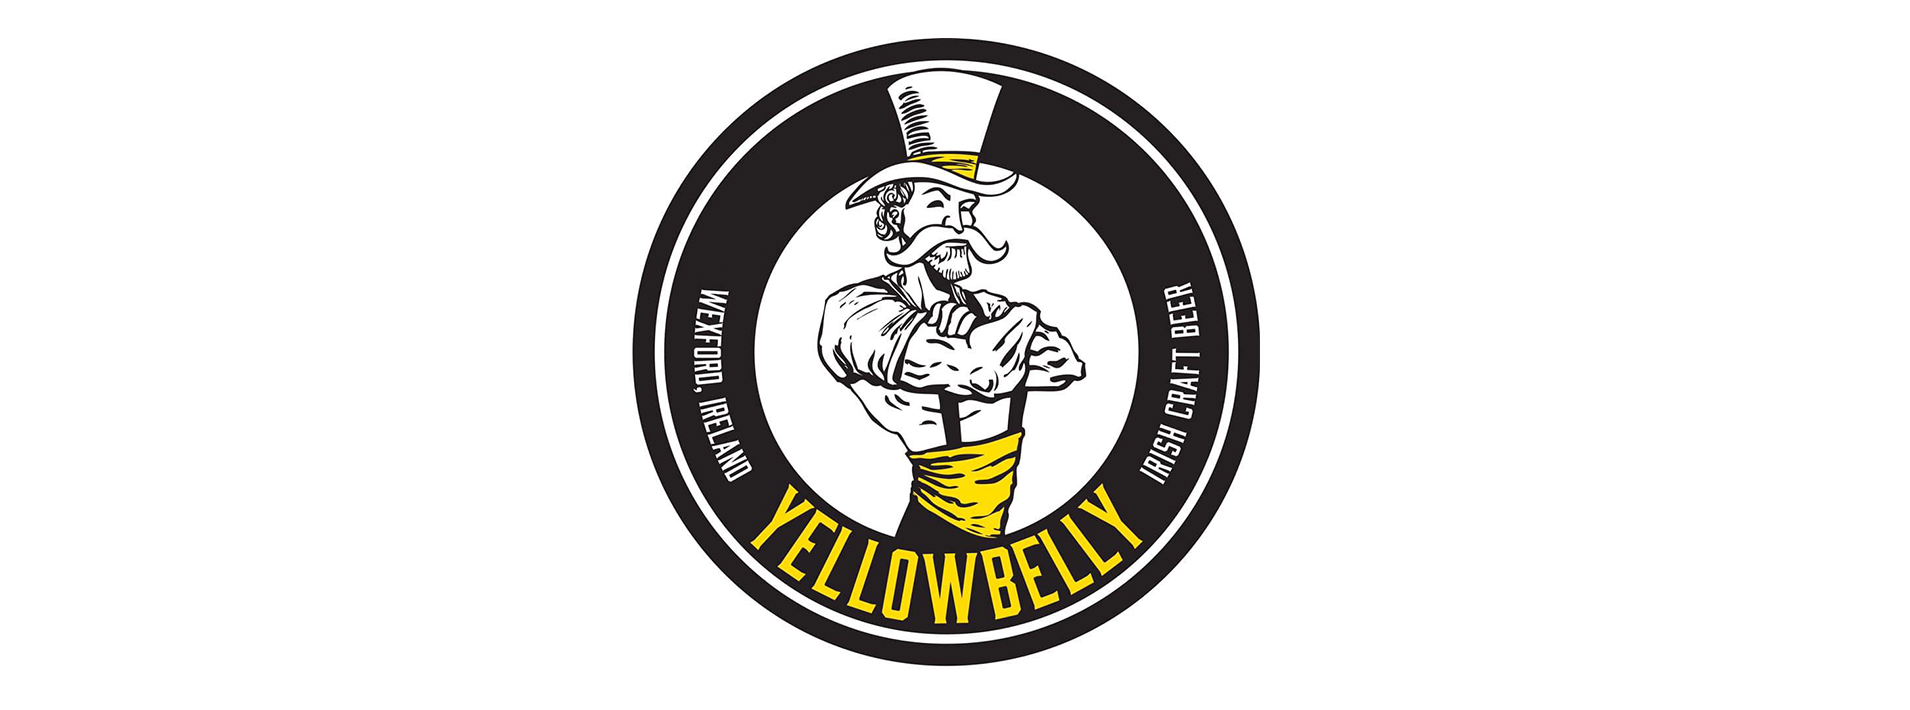 Image of YellowBelly Beer, Great Tasting Irish Beer from Wexford.